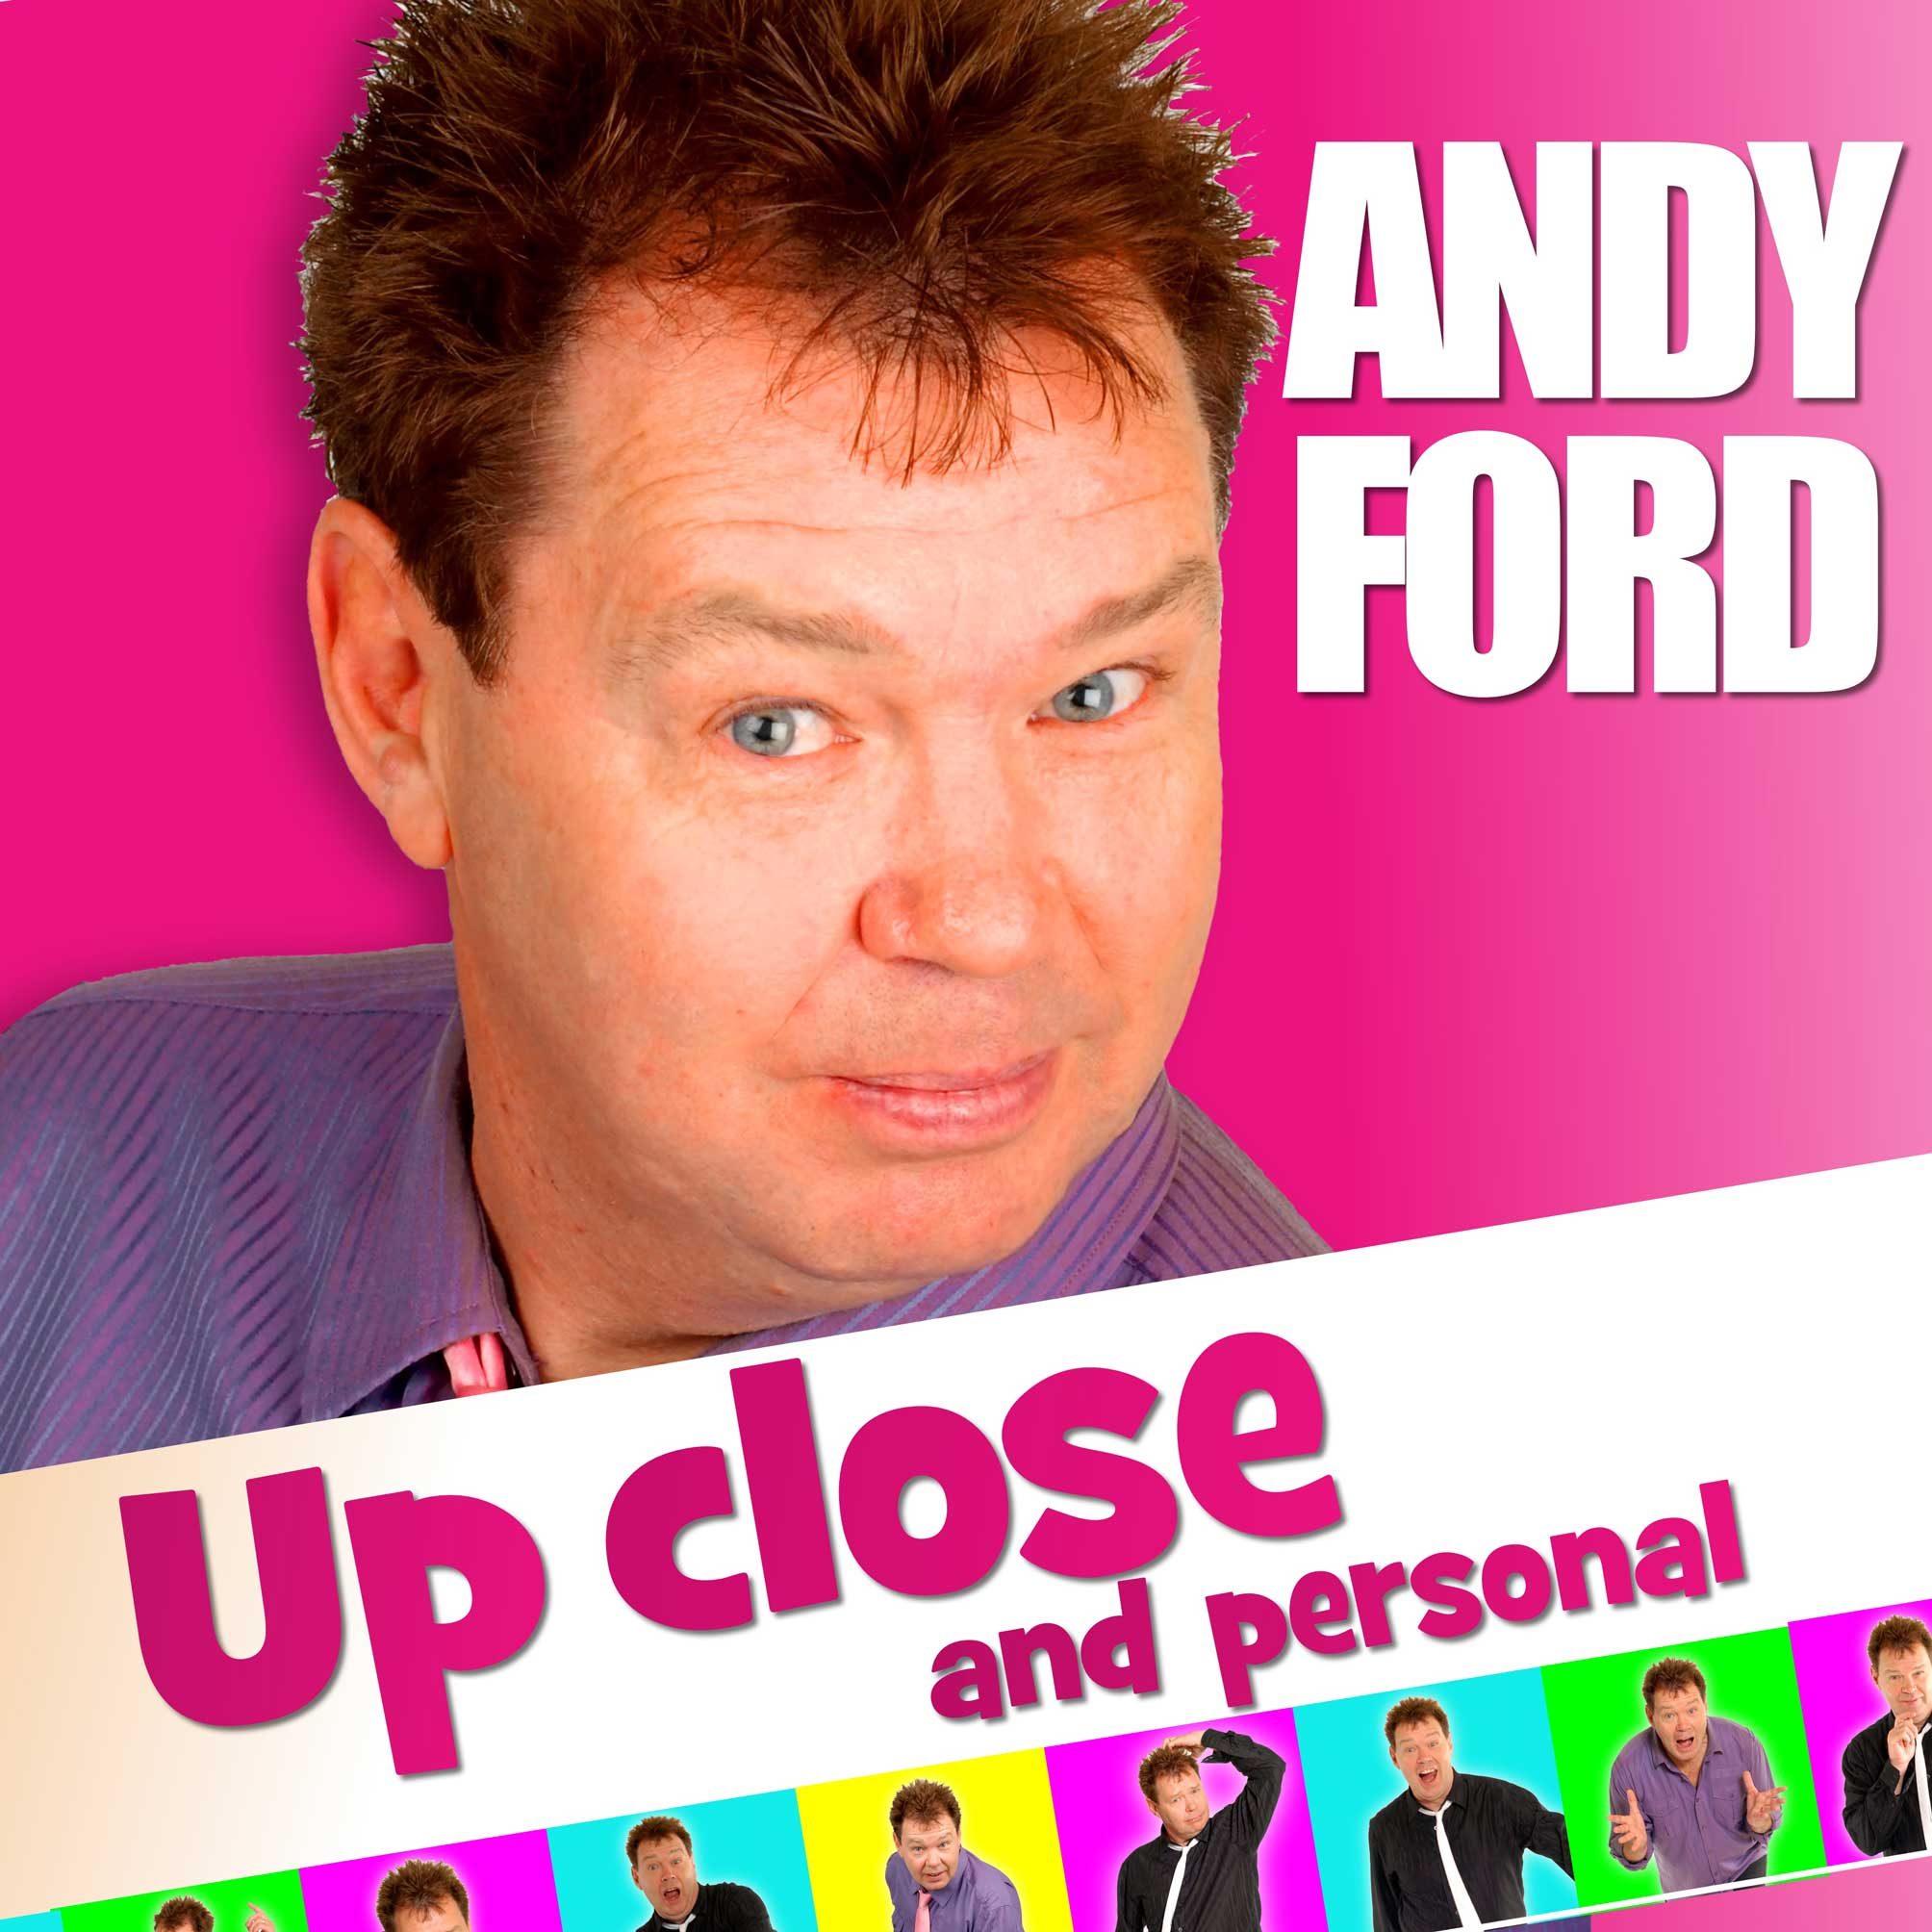 Andy Ford